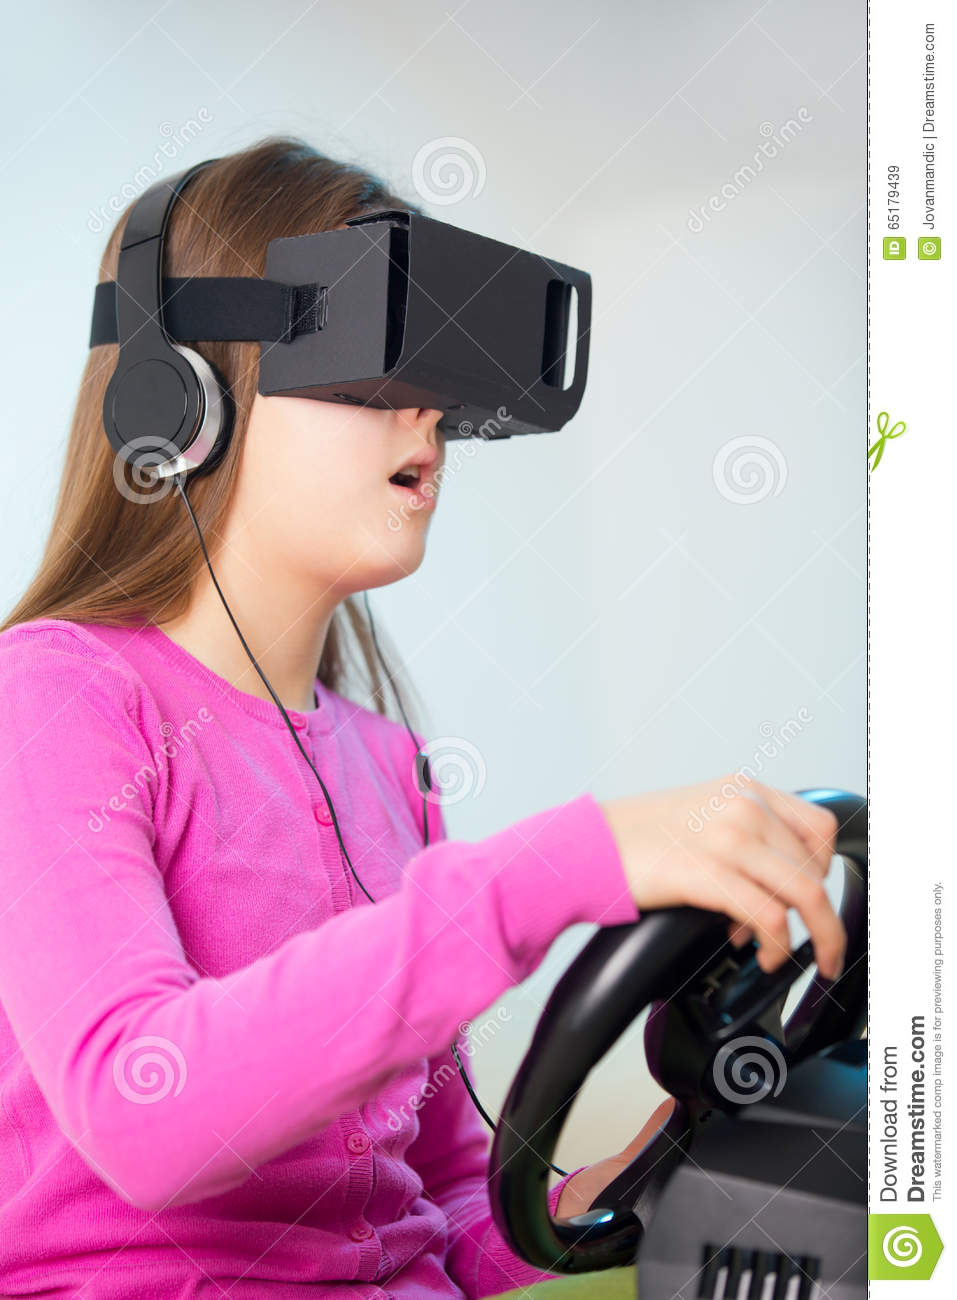 38bc502a166 Girl holding a gaming computer wheel getting experience using VR-headset  glasses